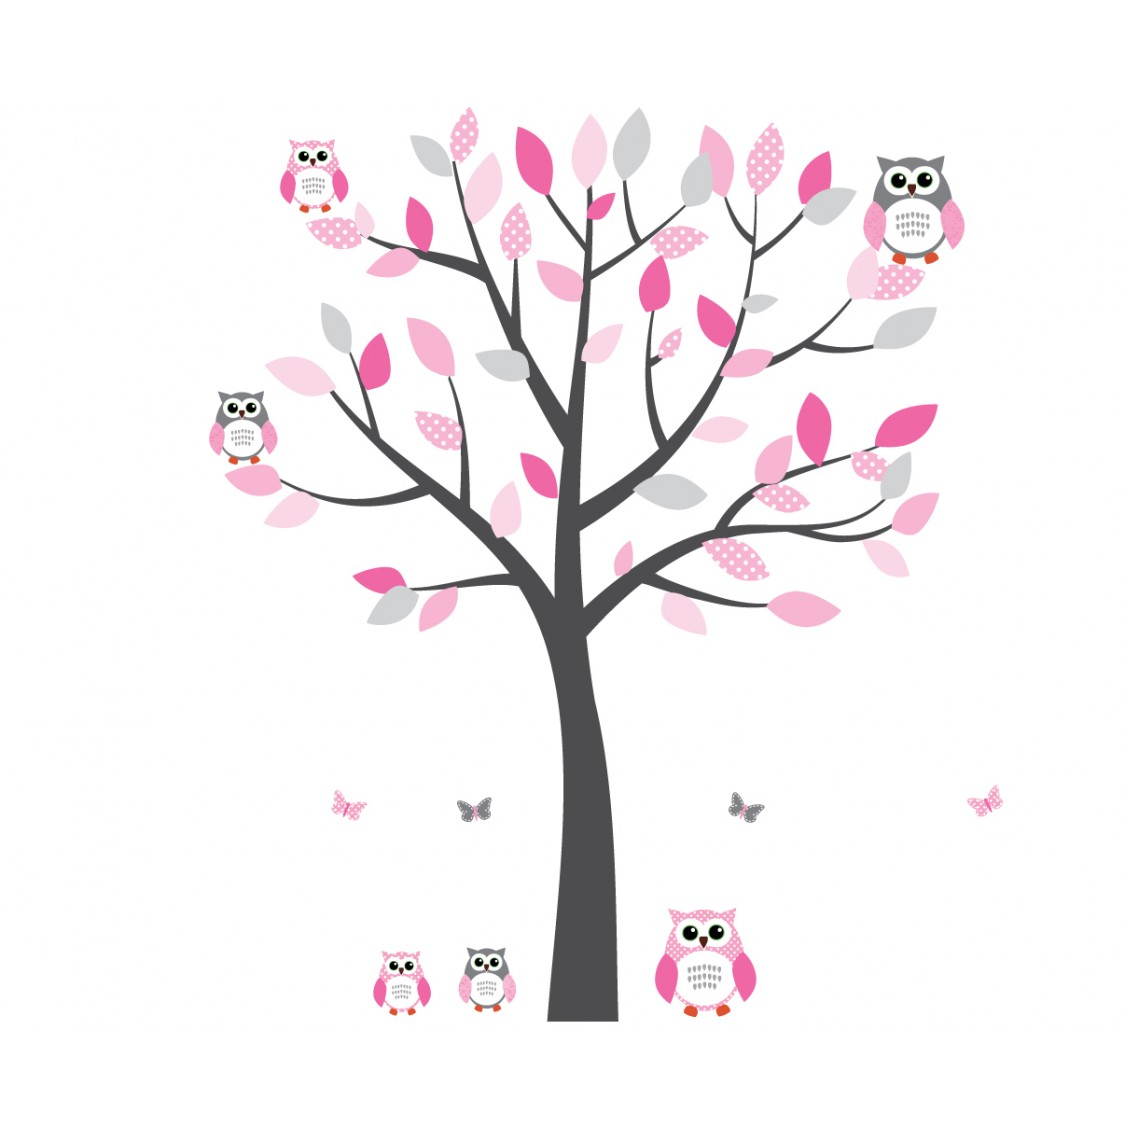 Wall Murals For Baby Rooms Pink And Grey Owl Decal With Tree Decals For Nursery For Girls